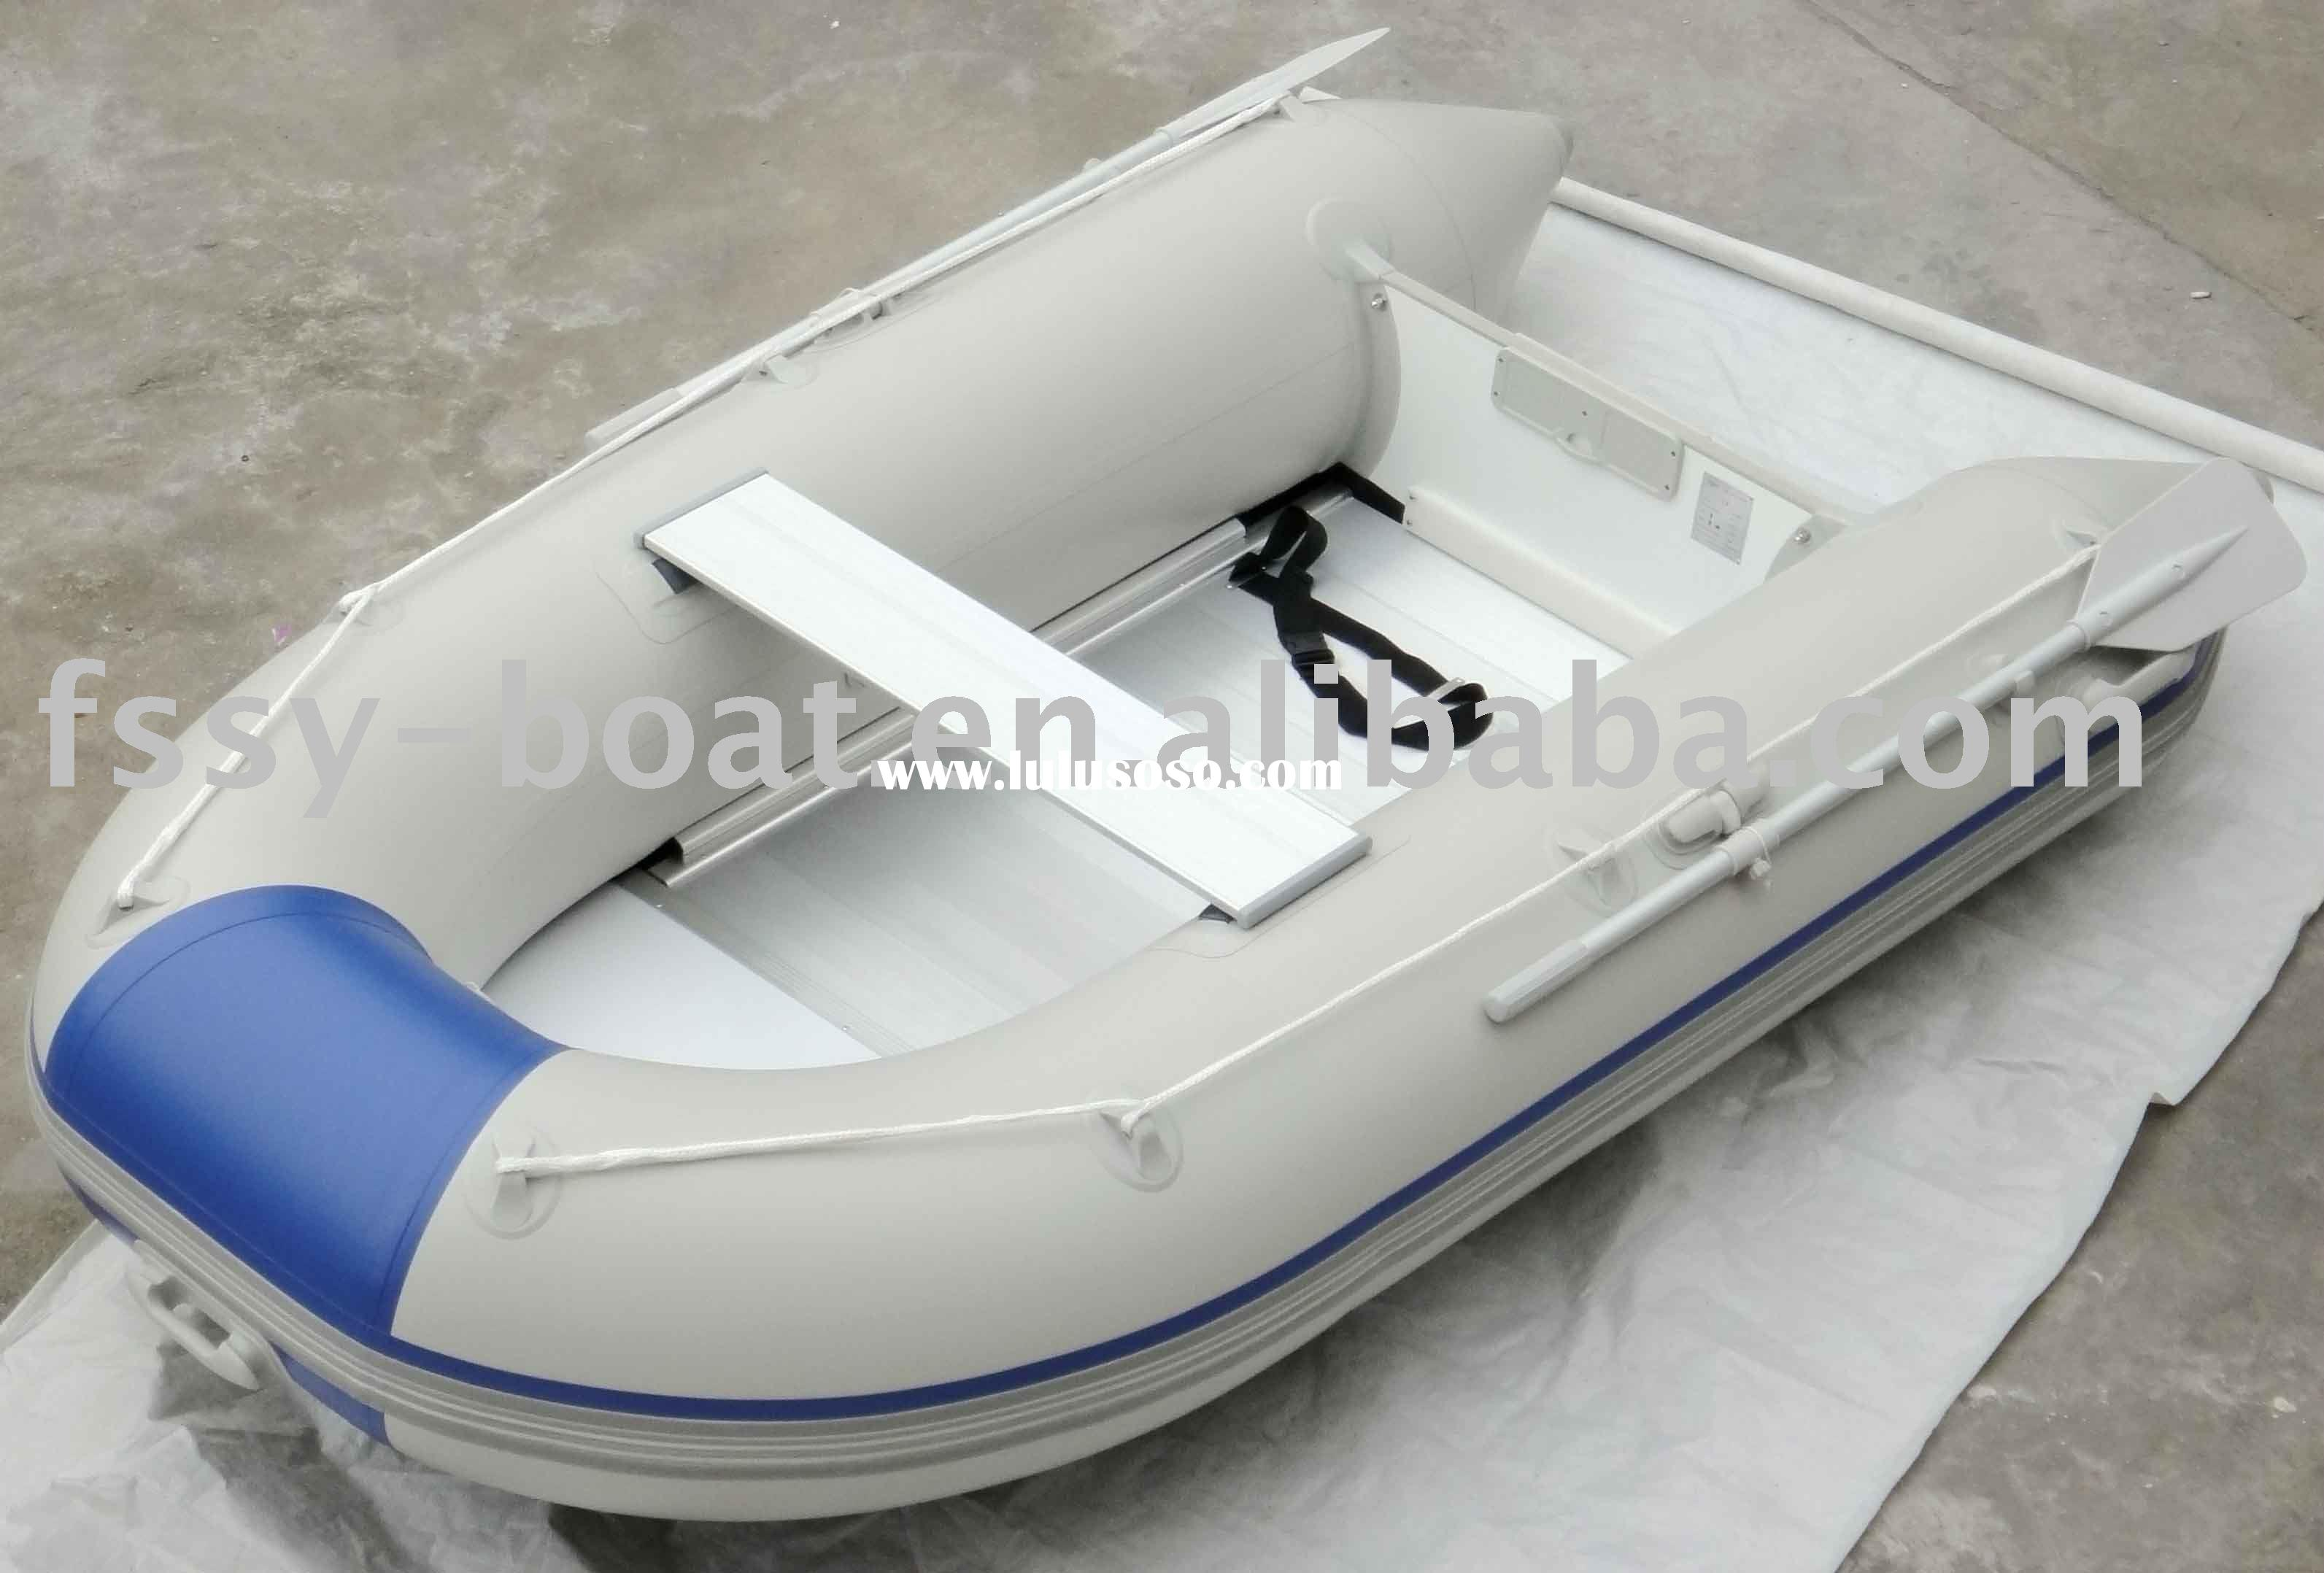 Sell 3.20 meter outboard motor/engine boat